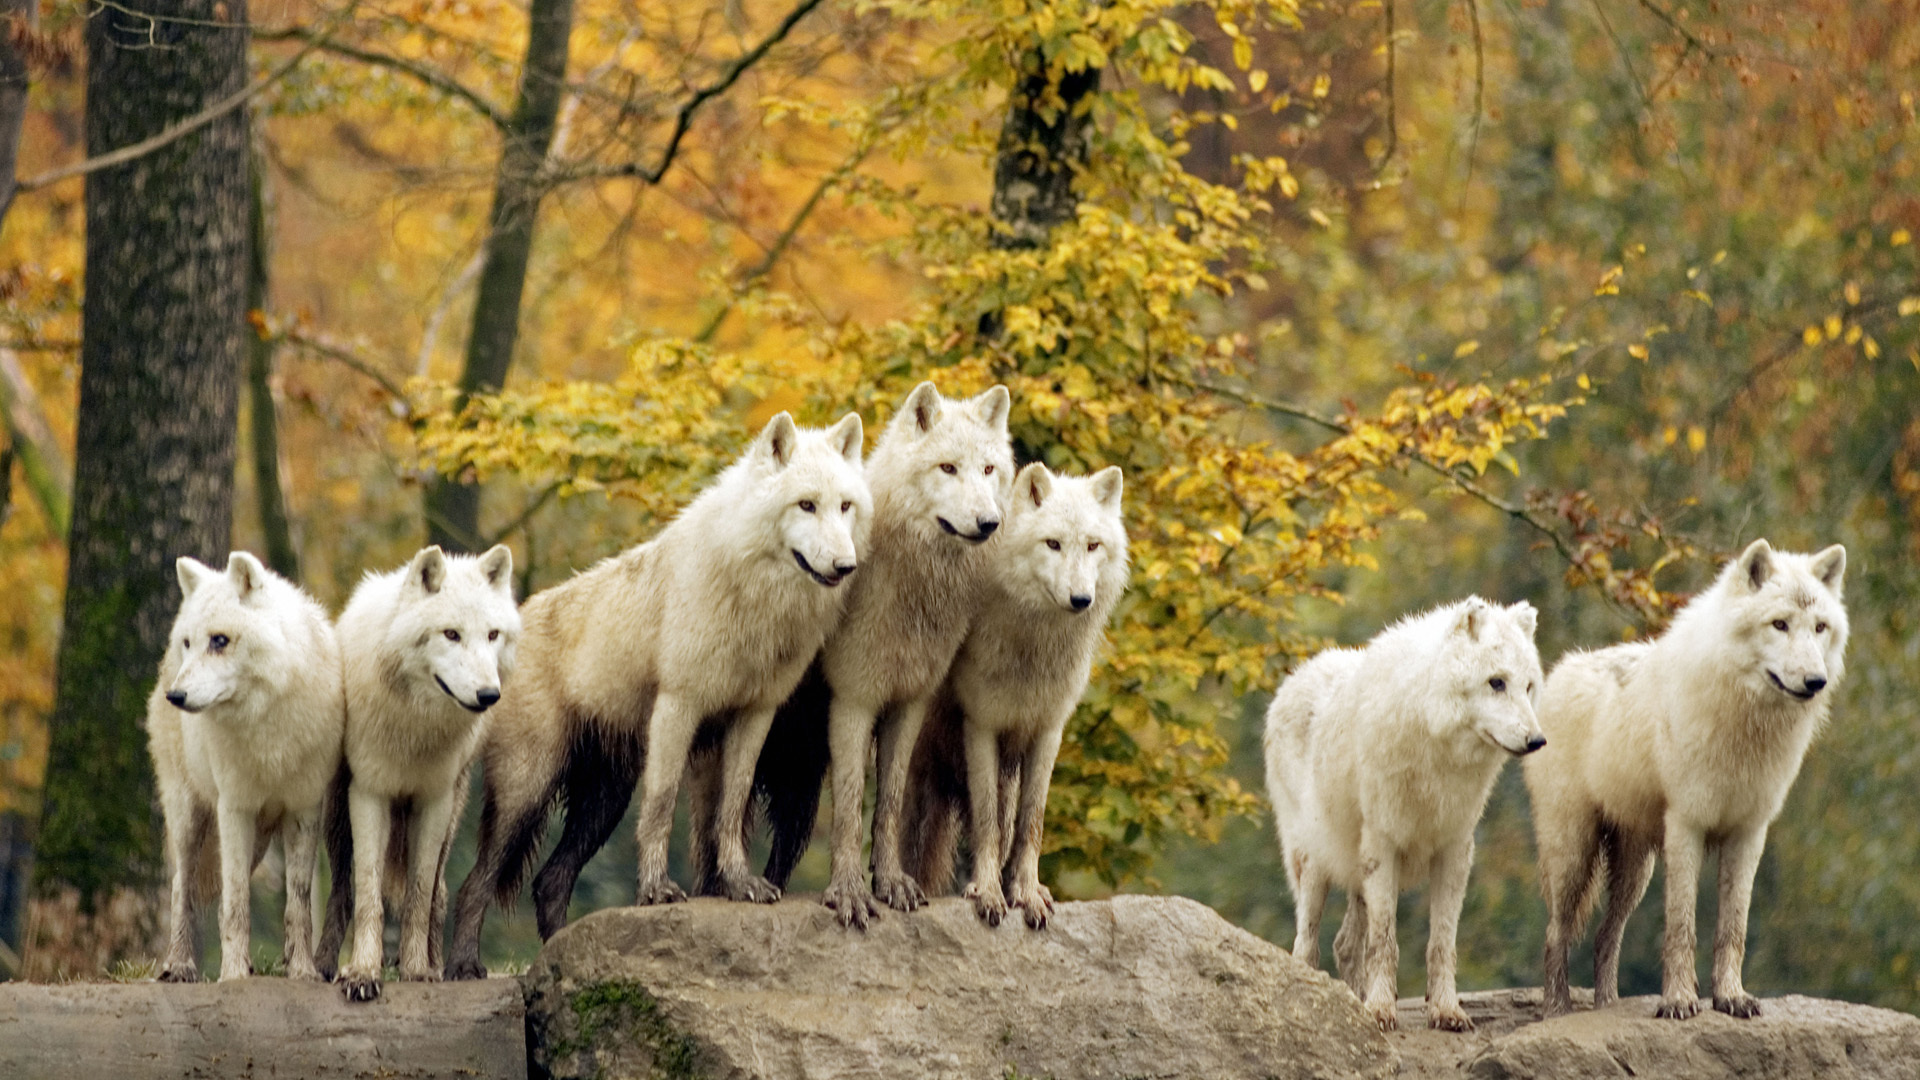 22527 download wallpaper Animals, Wolfs screensavers and pictures for free